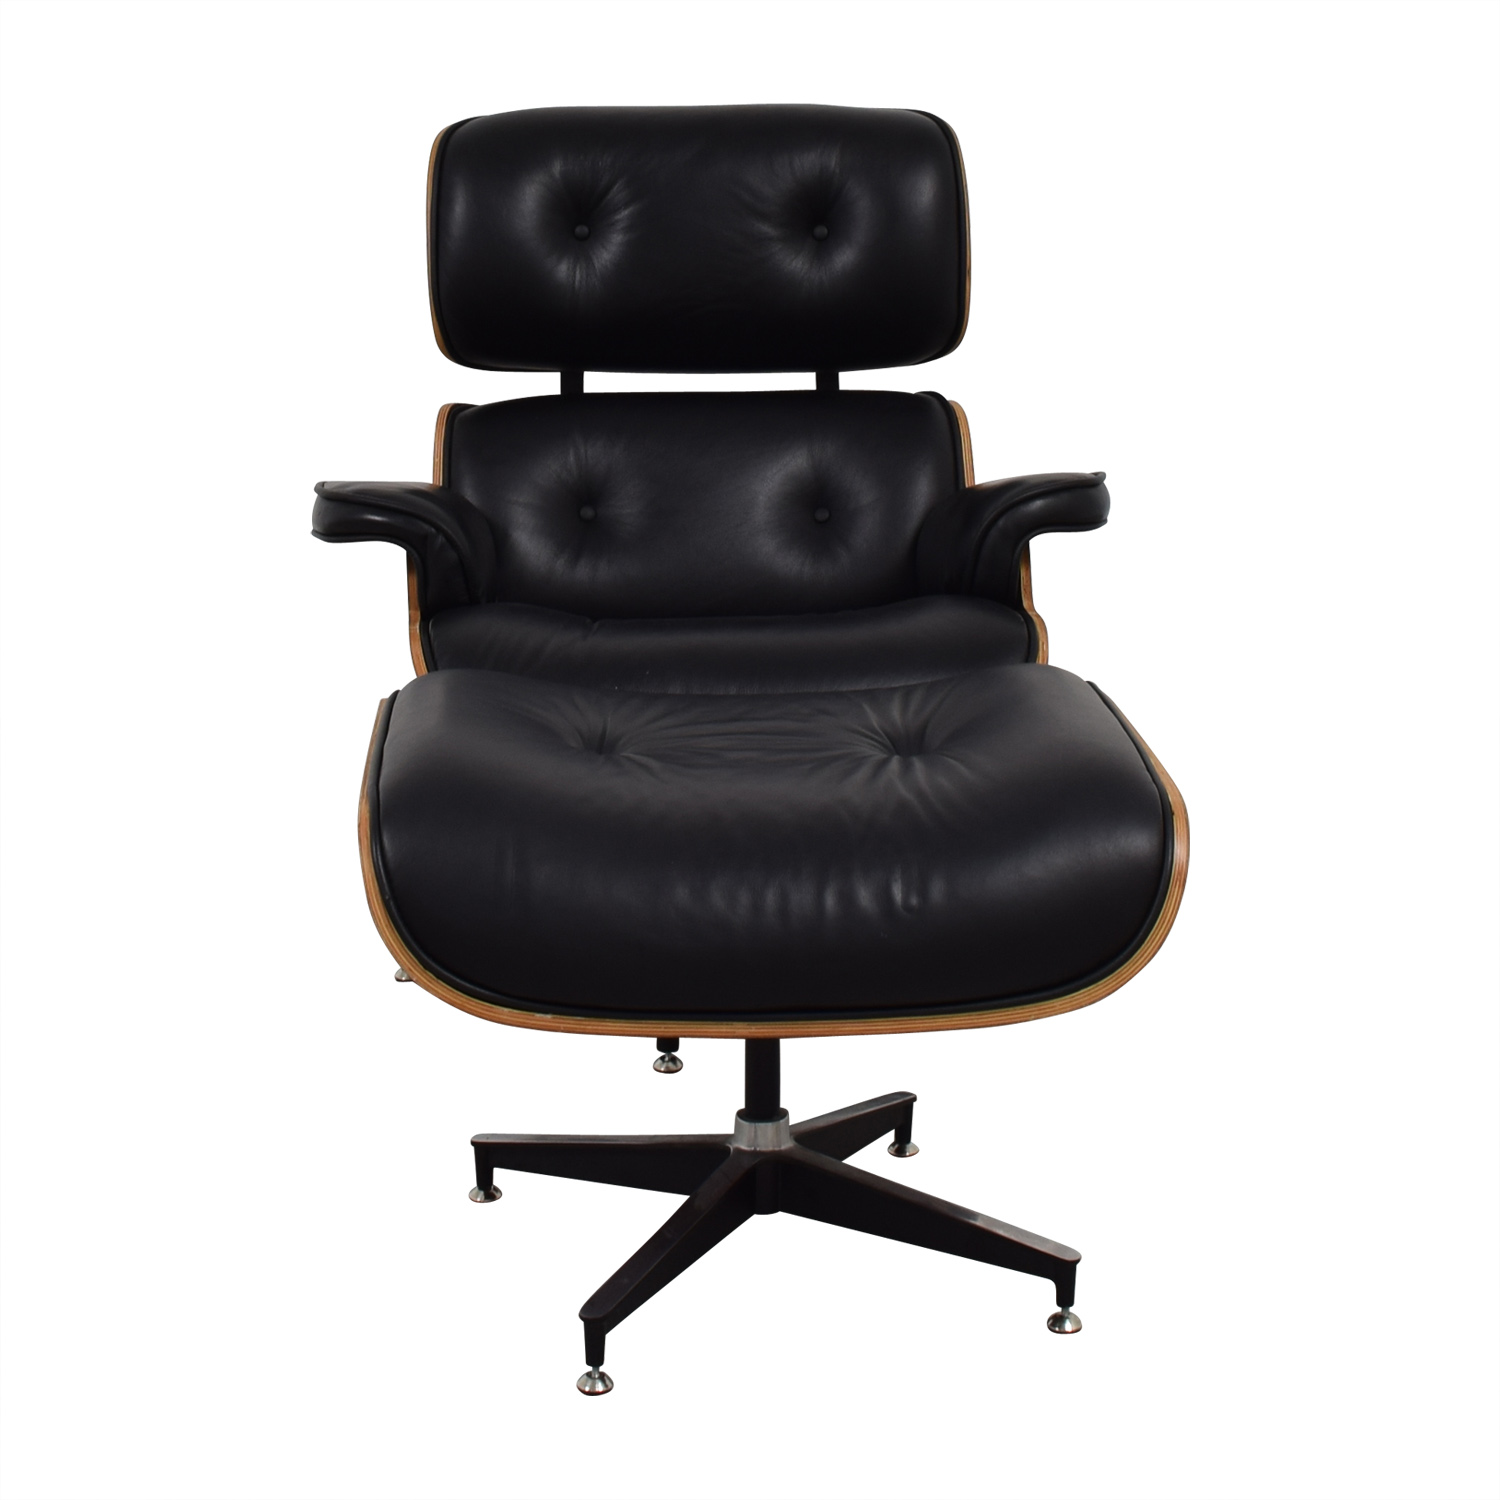 Manhattan Home Design Manhattan Home Design Eames Replica Chair and Ottoman Chairs